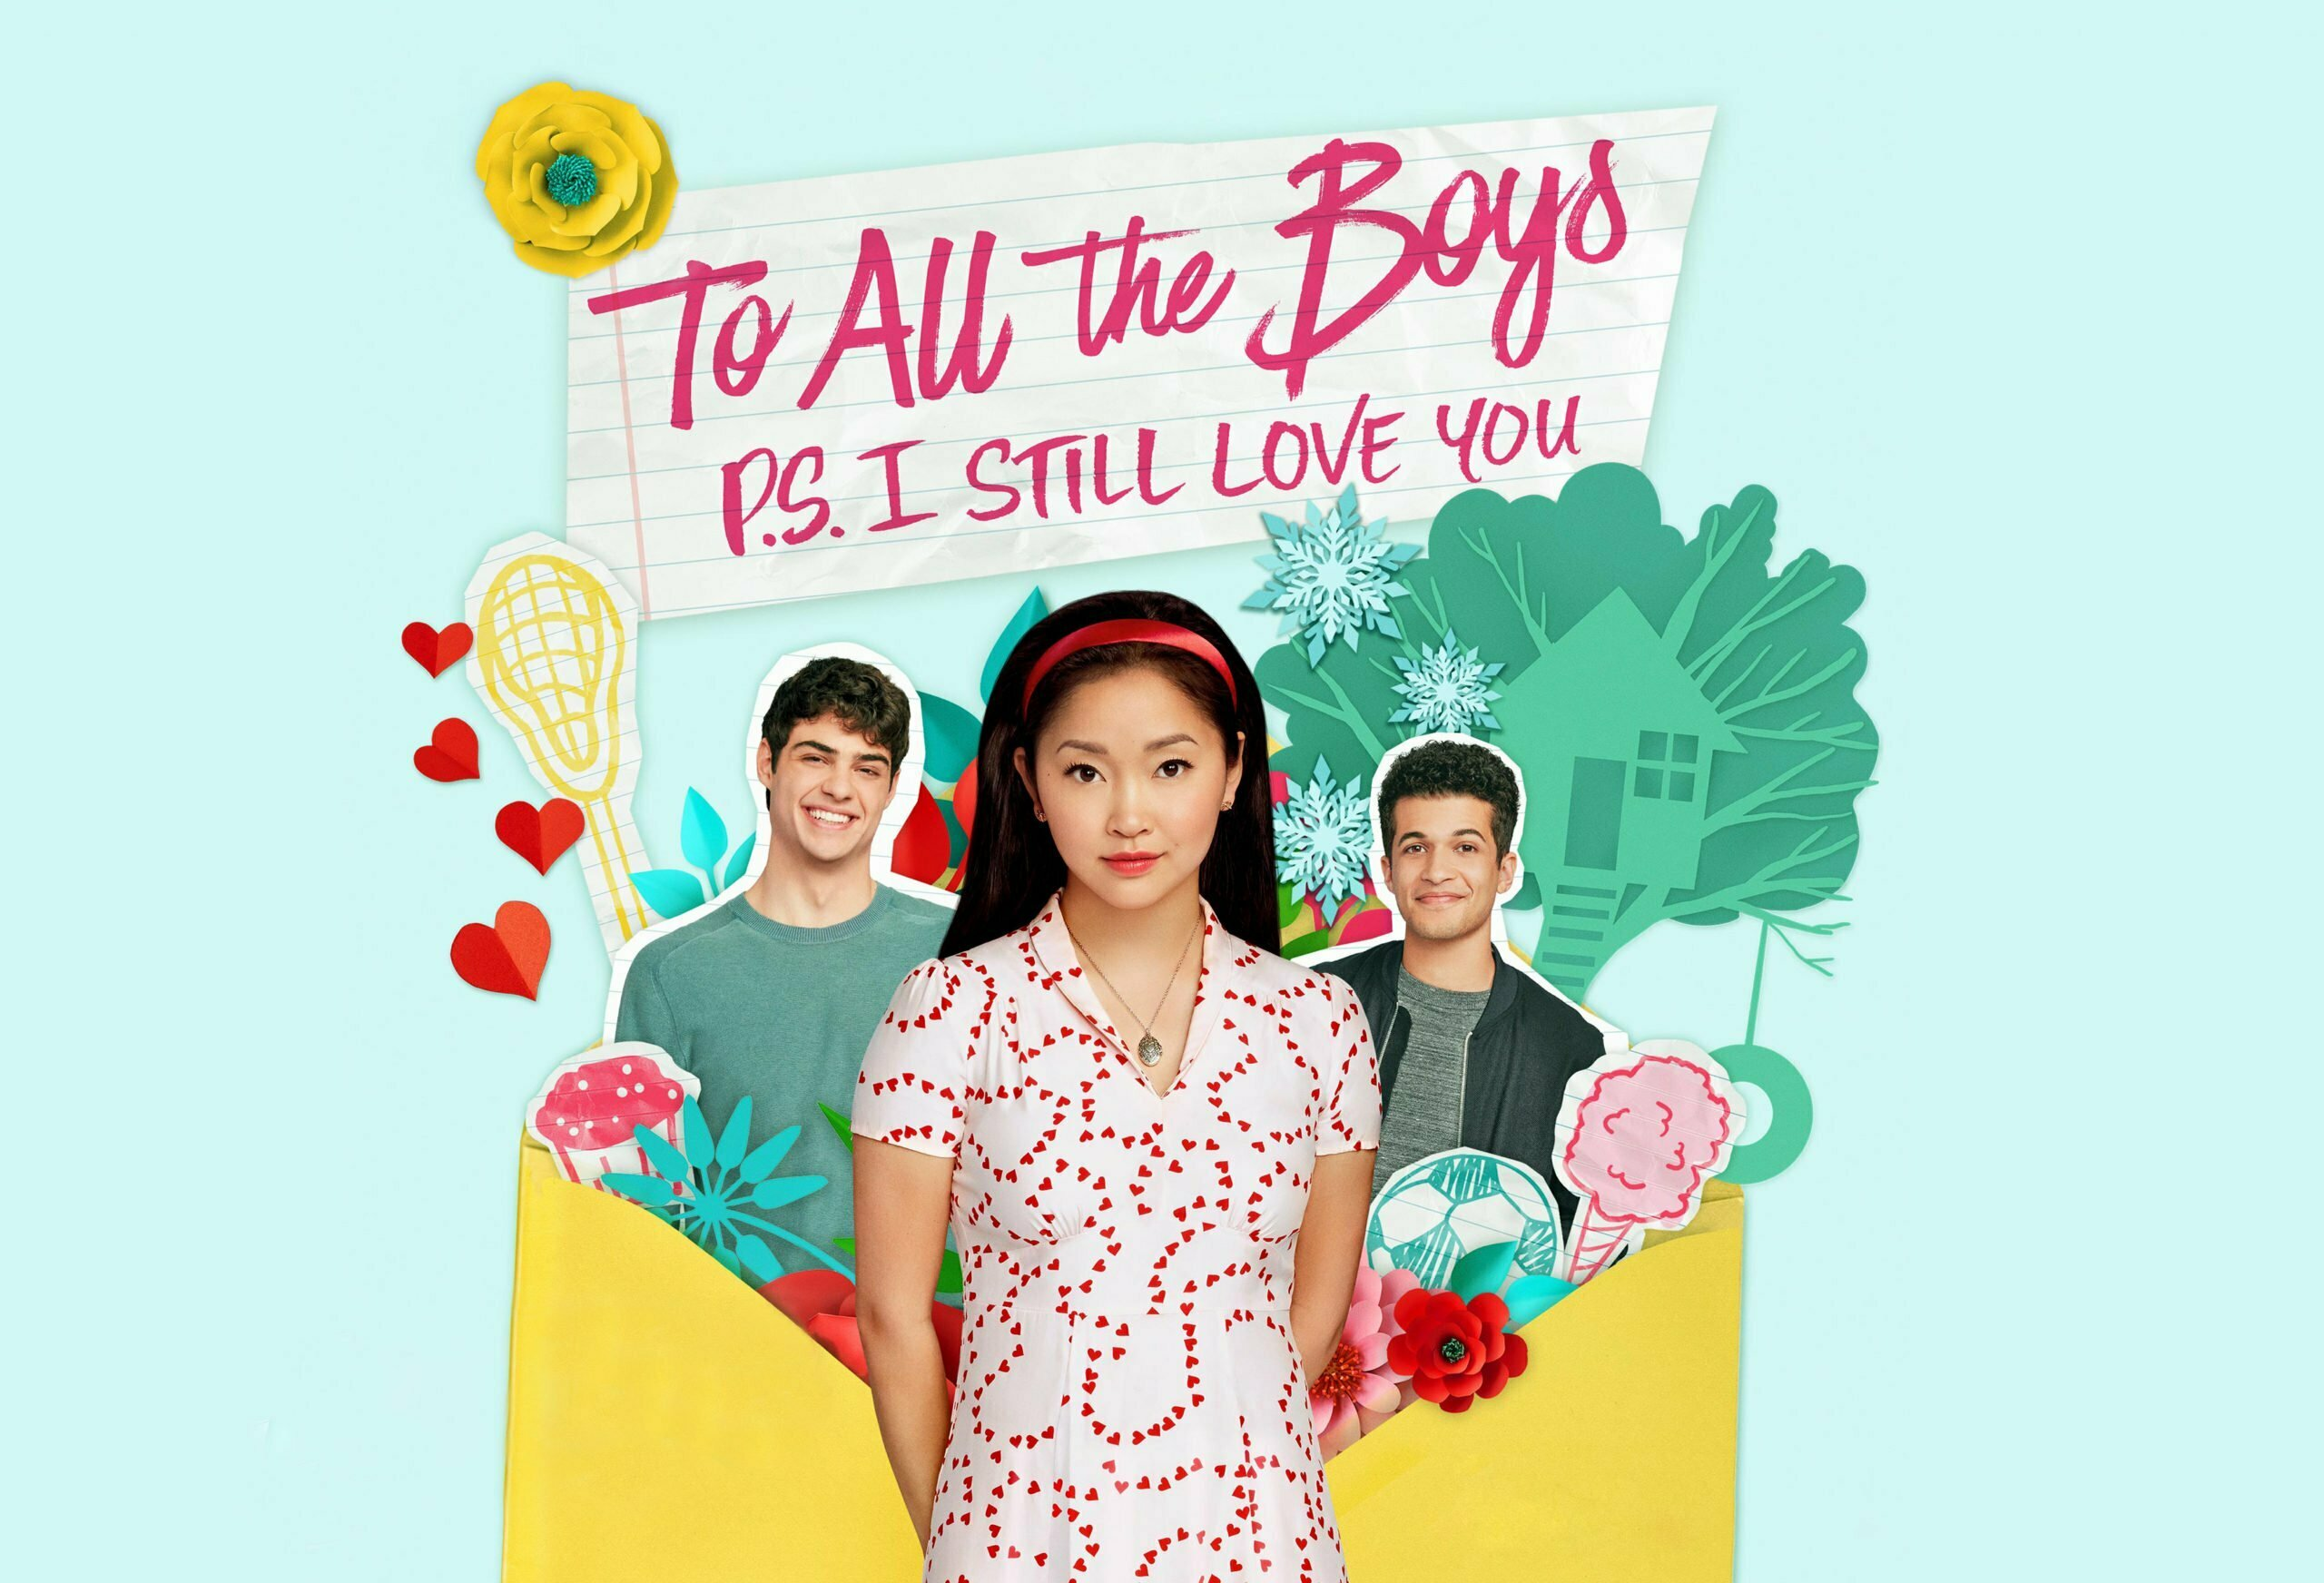 Review: To All the Boys (P.S. I Still Love You); Worth The Time?